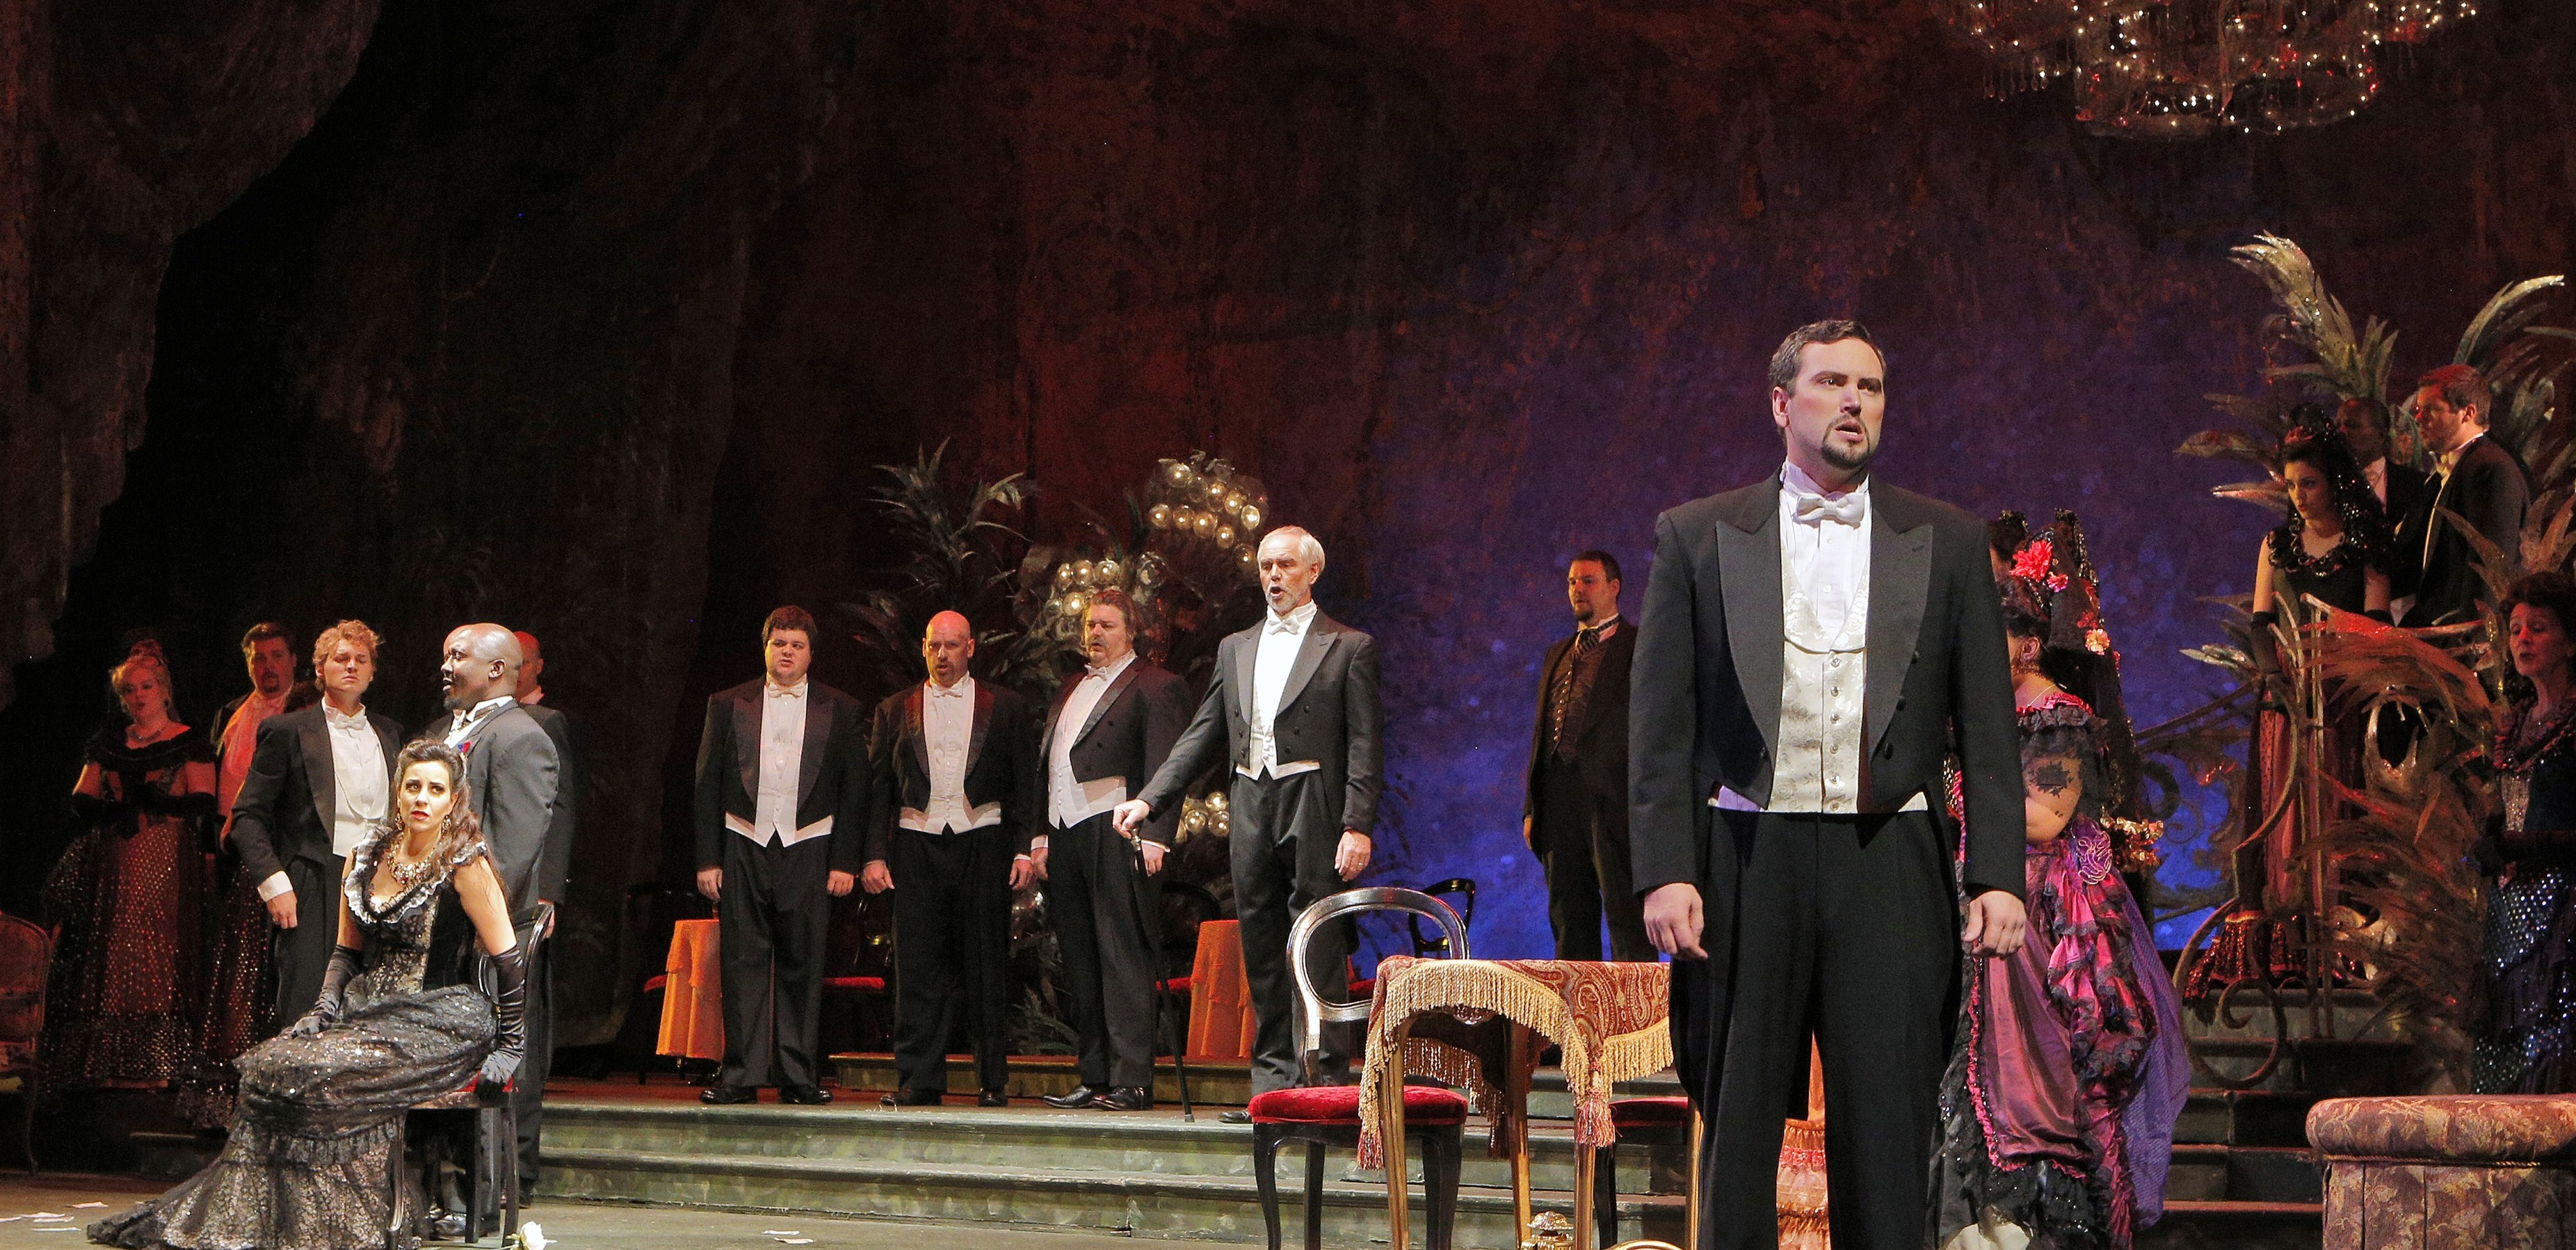 PASSION WITH A FLICKER OF FIRE: Lyric brings attractive production, fresh voices, to Verdi classic